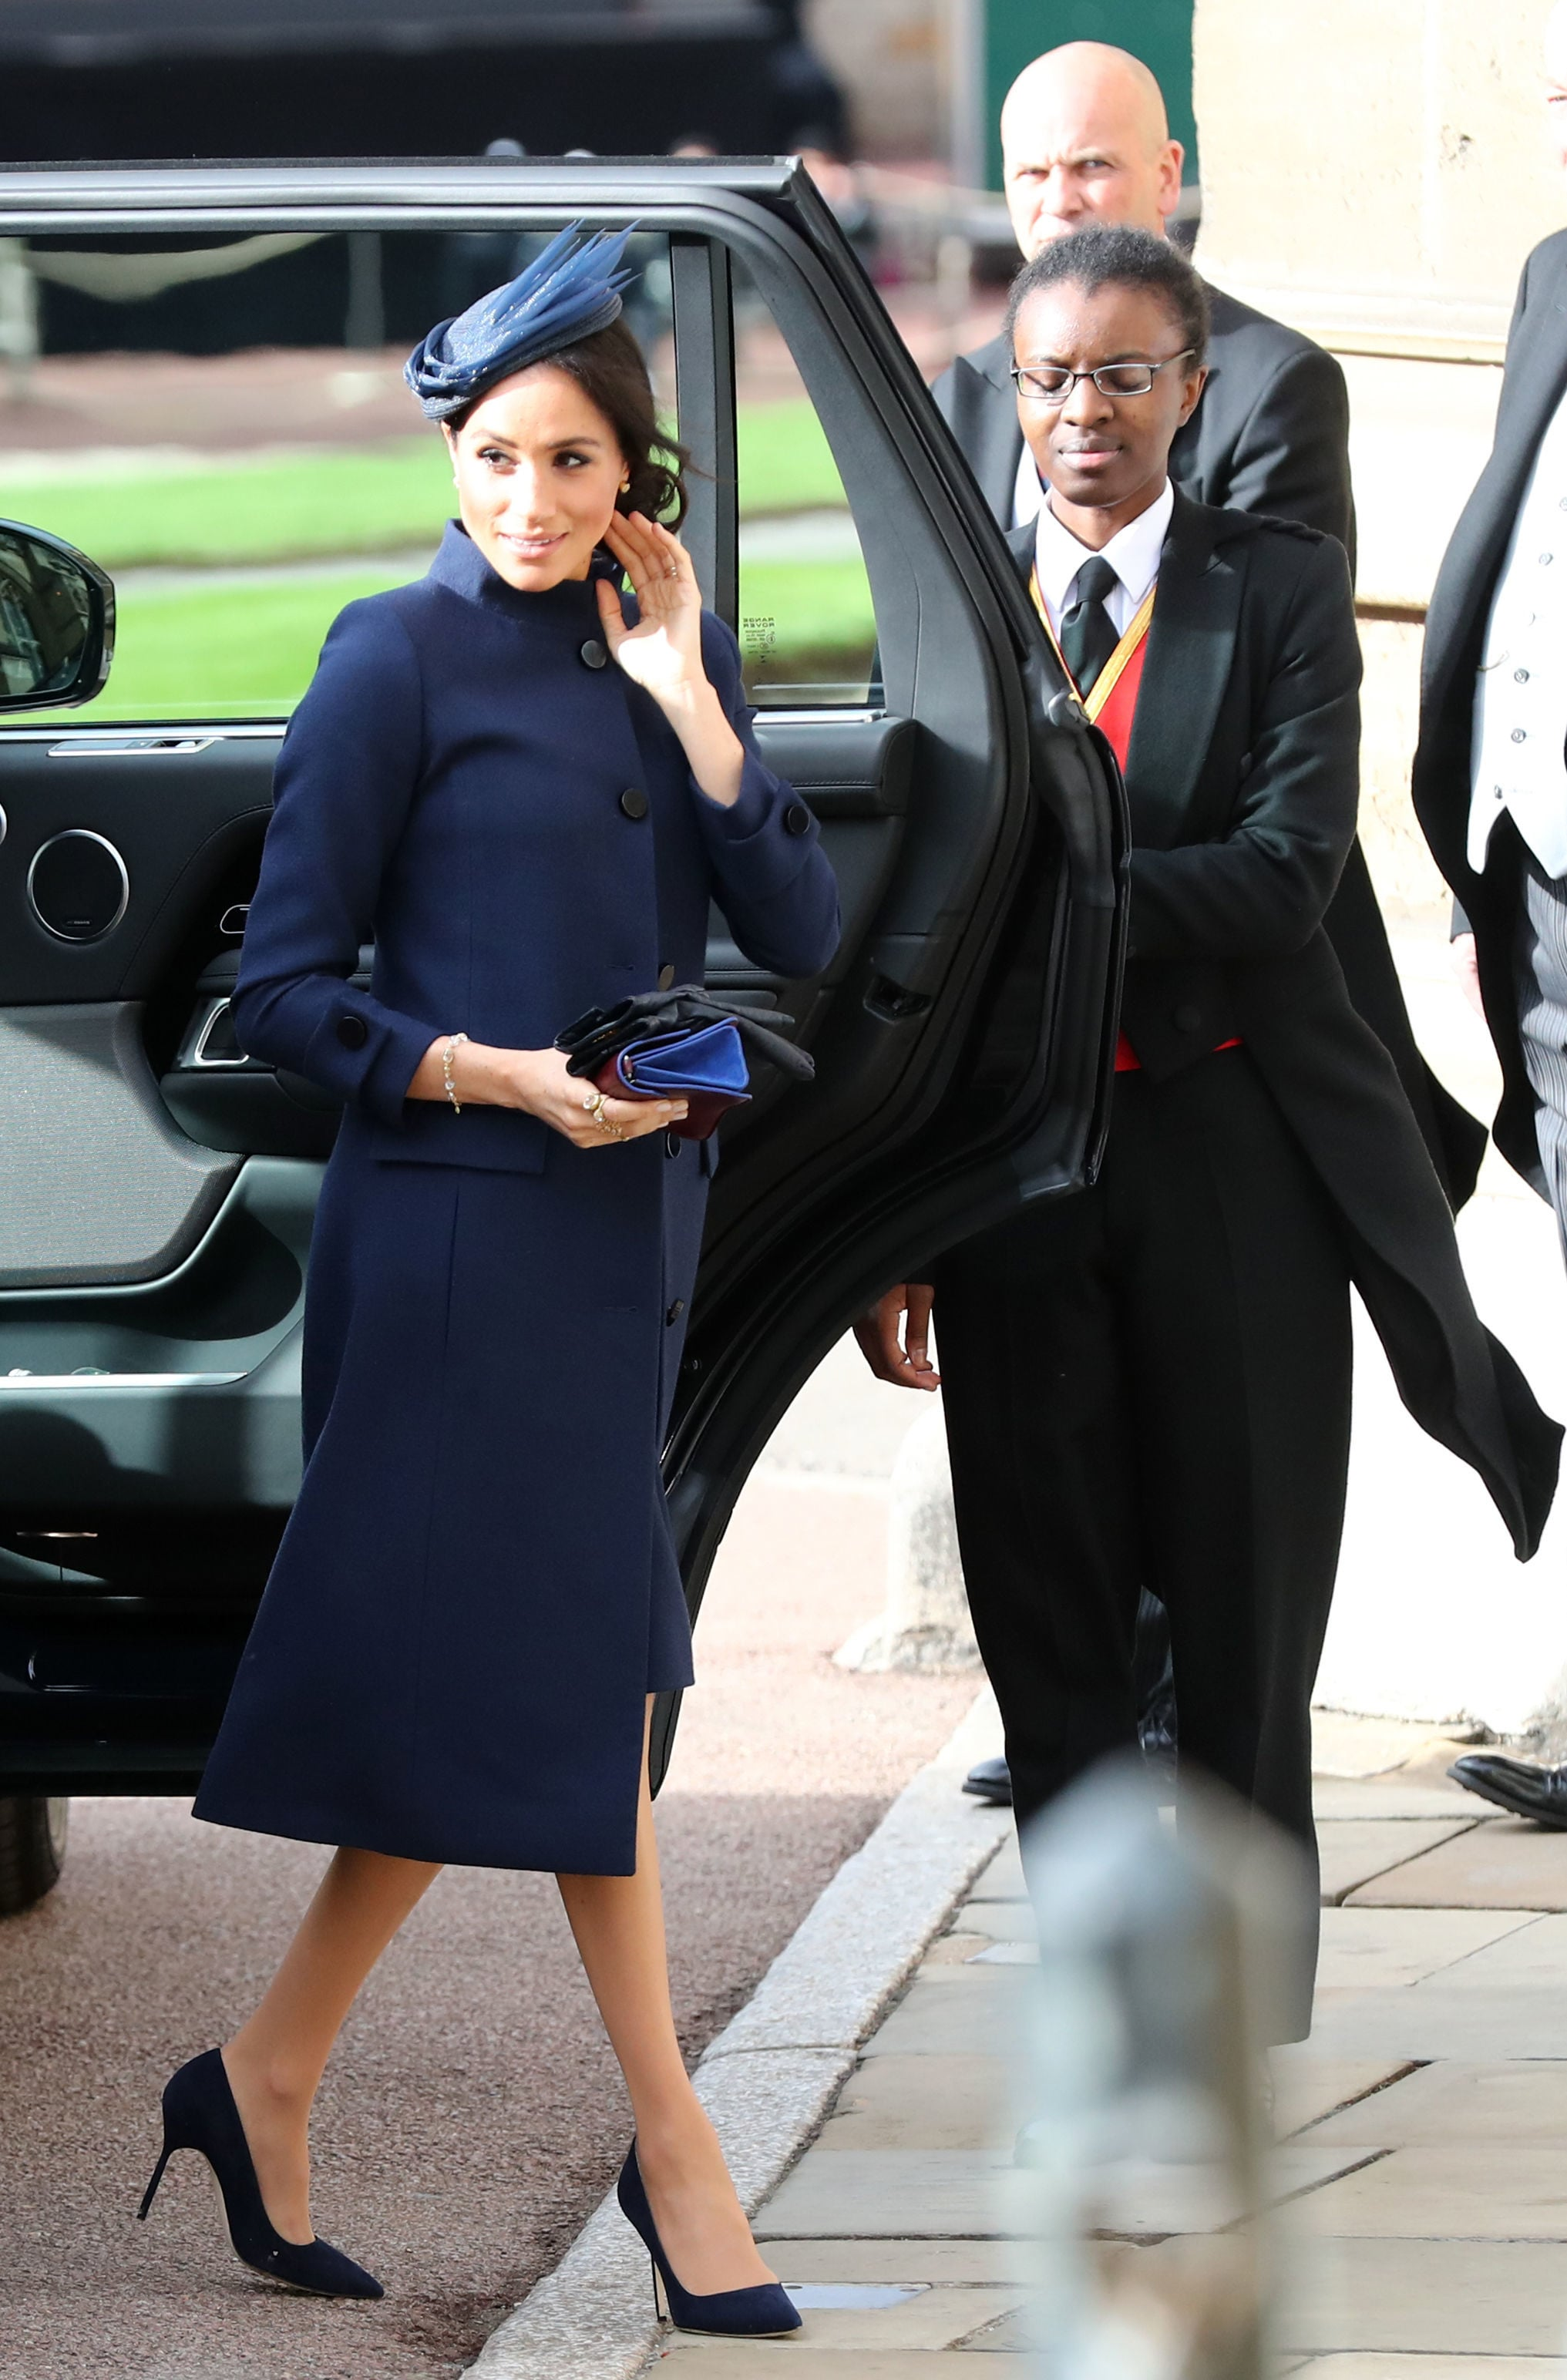 WINDSOR, ENGLAND - OCTOBER 12: Meghan, Duchess of Sussex arrives ahead of the wedding of Princess Eugenie of York to Jack Brooksbank at Windsor Castle on October 12, 2018 in Windsor, England. (Photo by Gareth Fuller - WPA Pool/Getty Images)